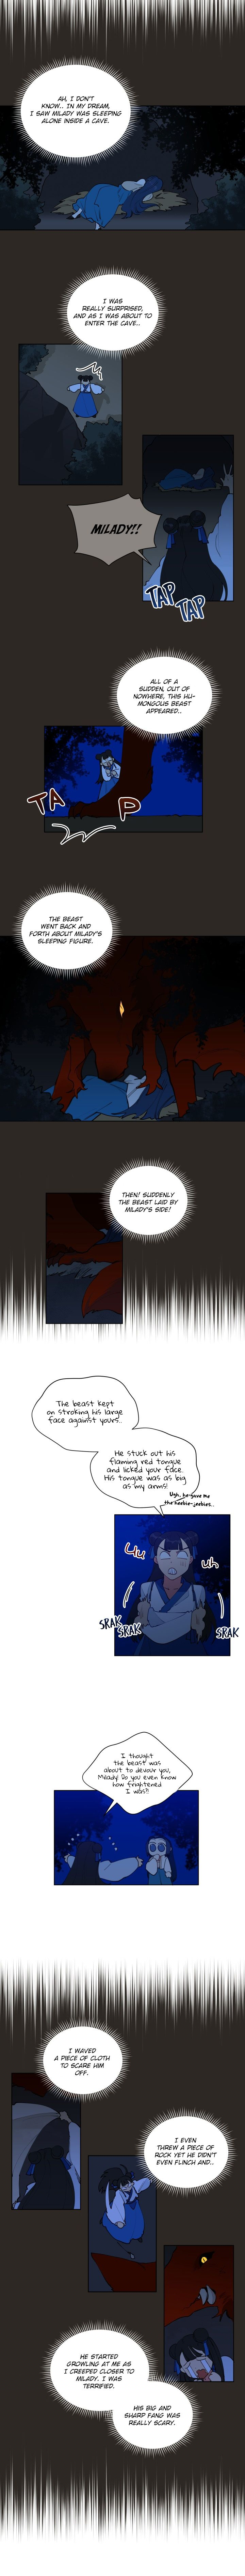 Beast with Flowers - chapter 13 - #2